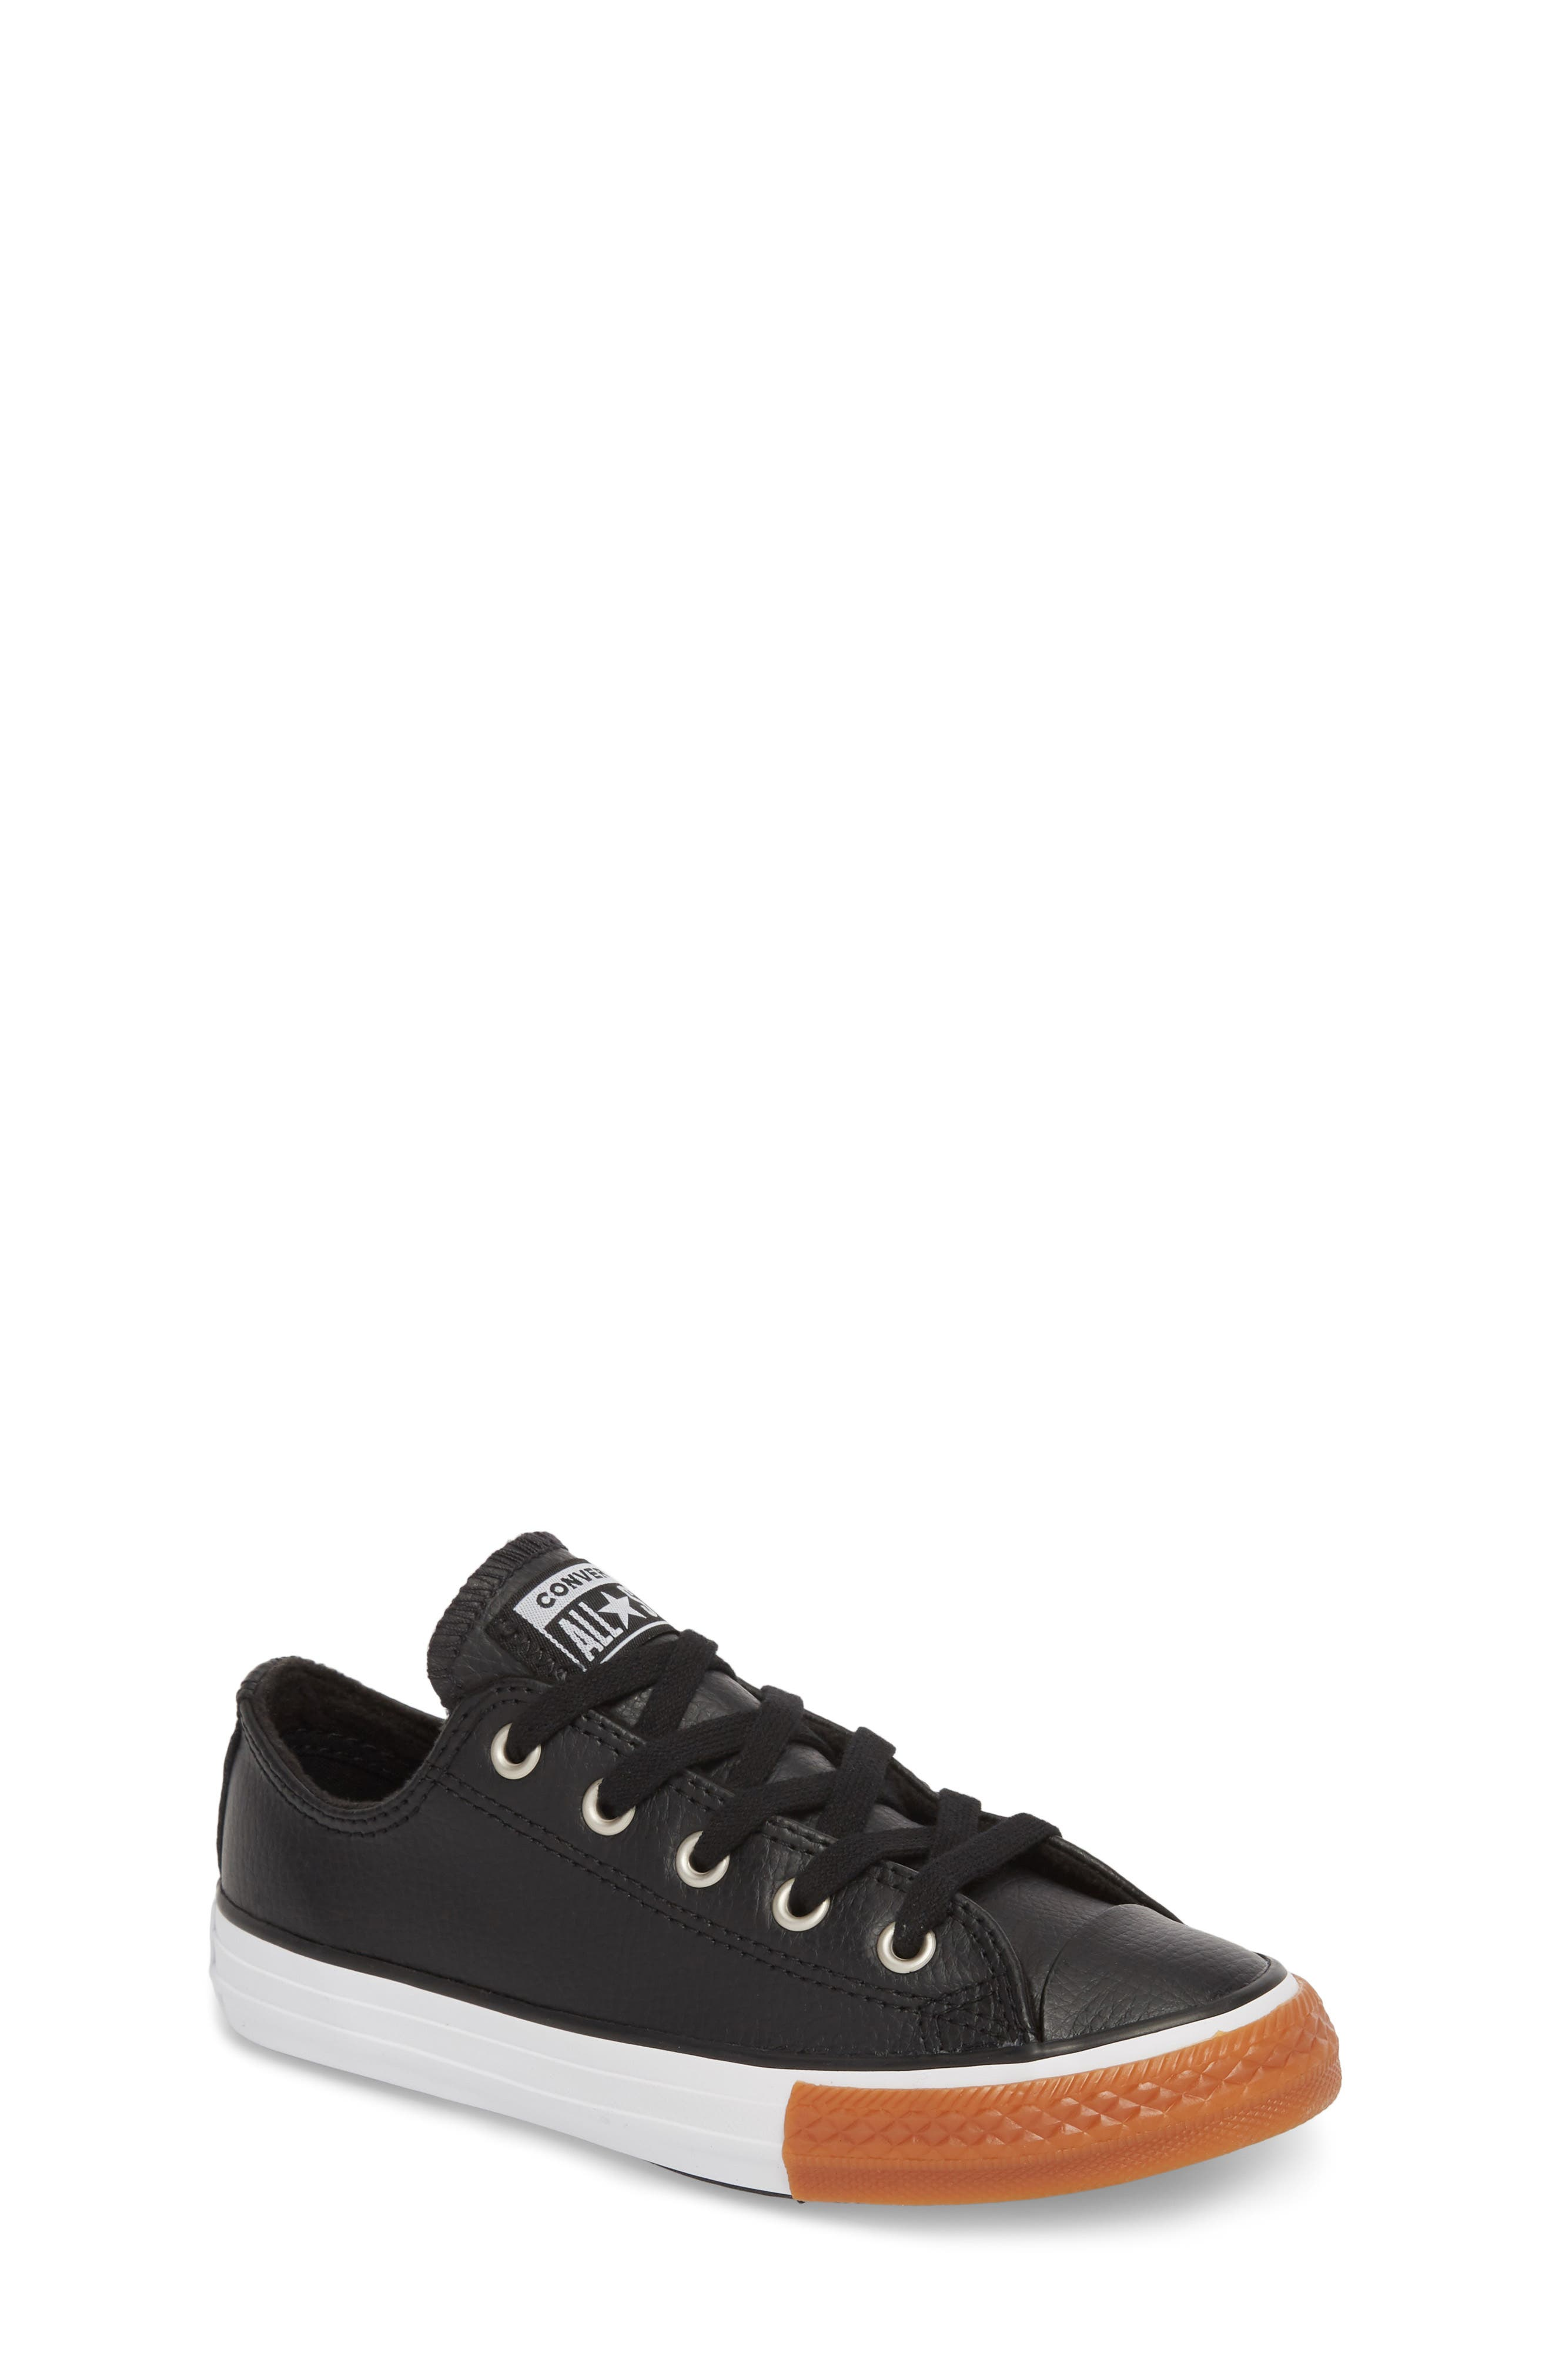 Chuck Taylor<sup>®</sup> All Star<sup>®</sup> Ox Faux Leather Sneaker,                             Main thumbnail 1, color,                             Black